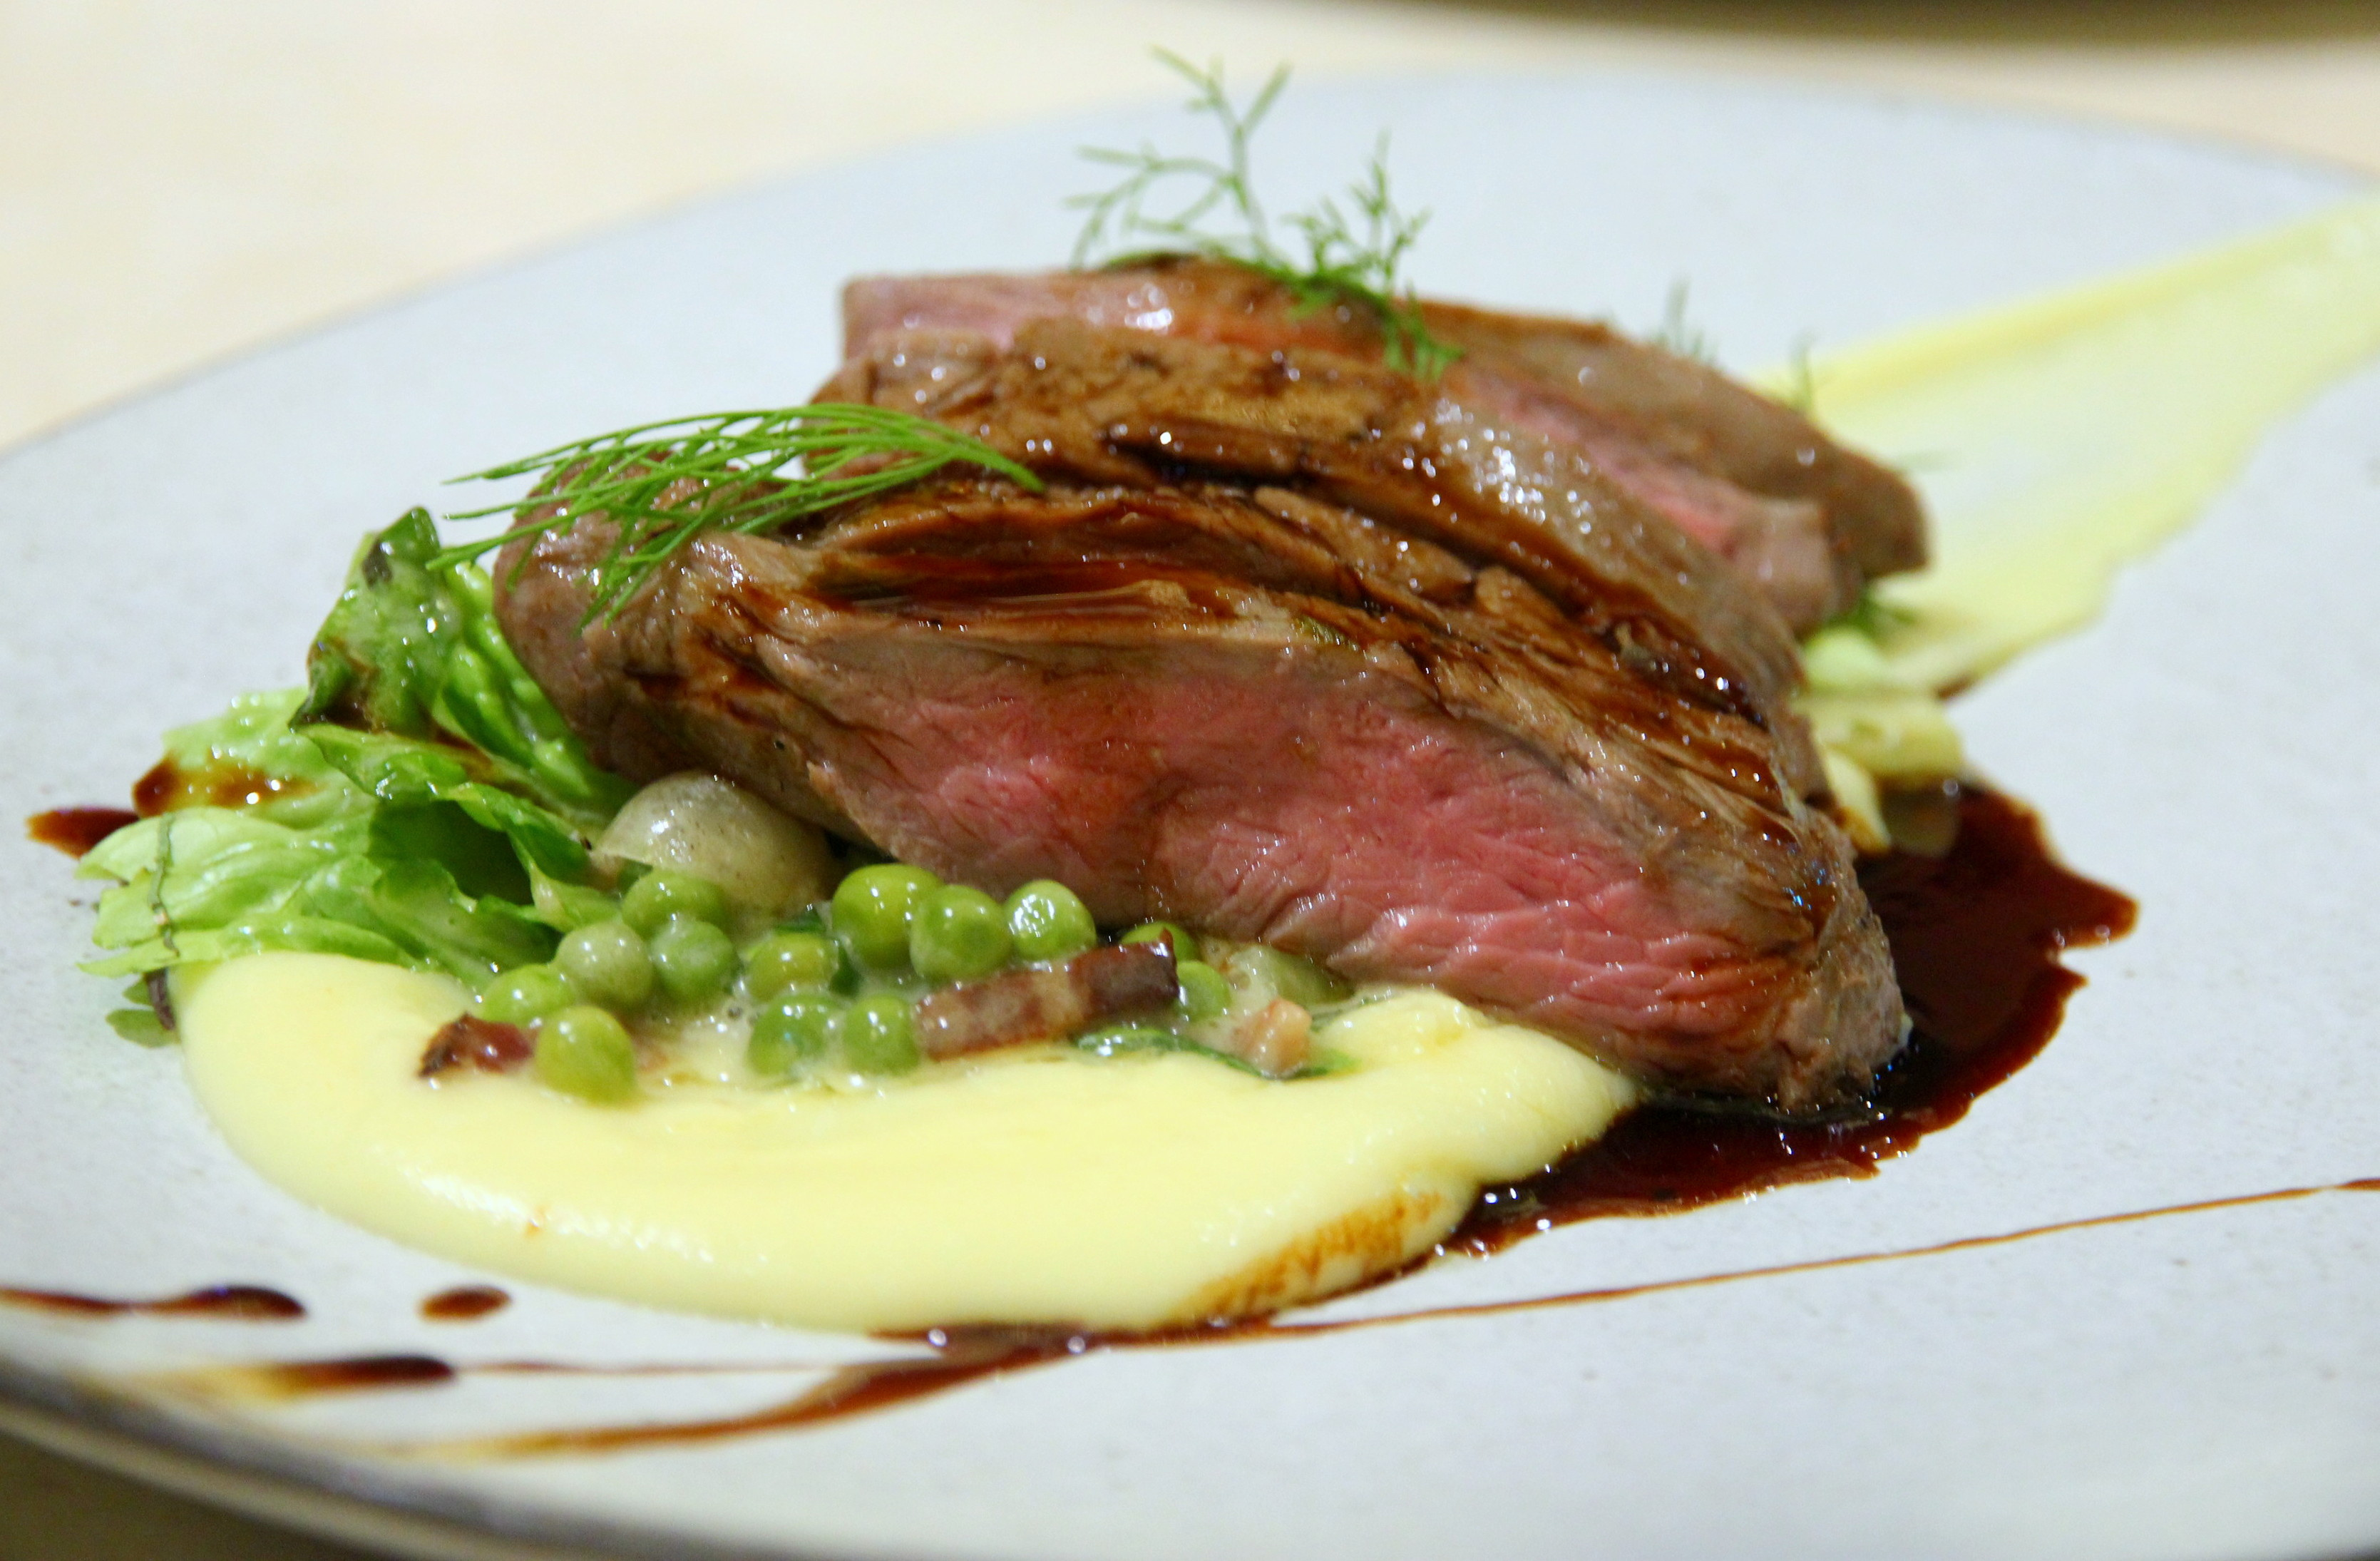 Food Review Open Farm Community At Dempsey 22 Dishes Tasted And